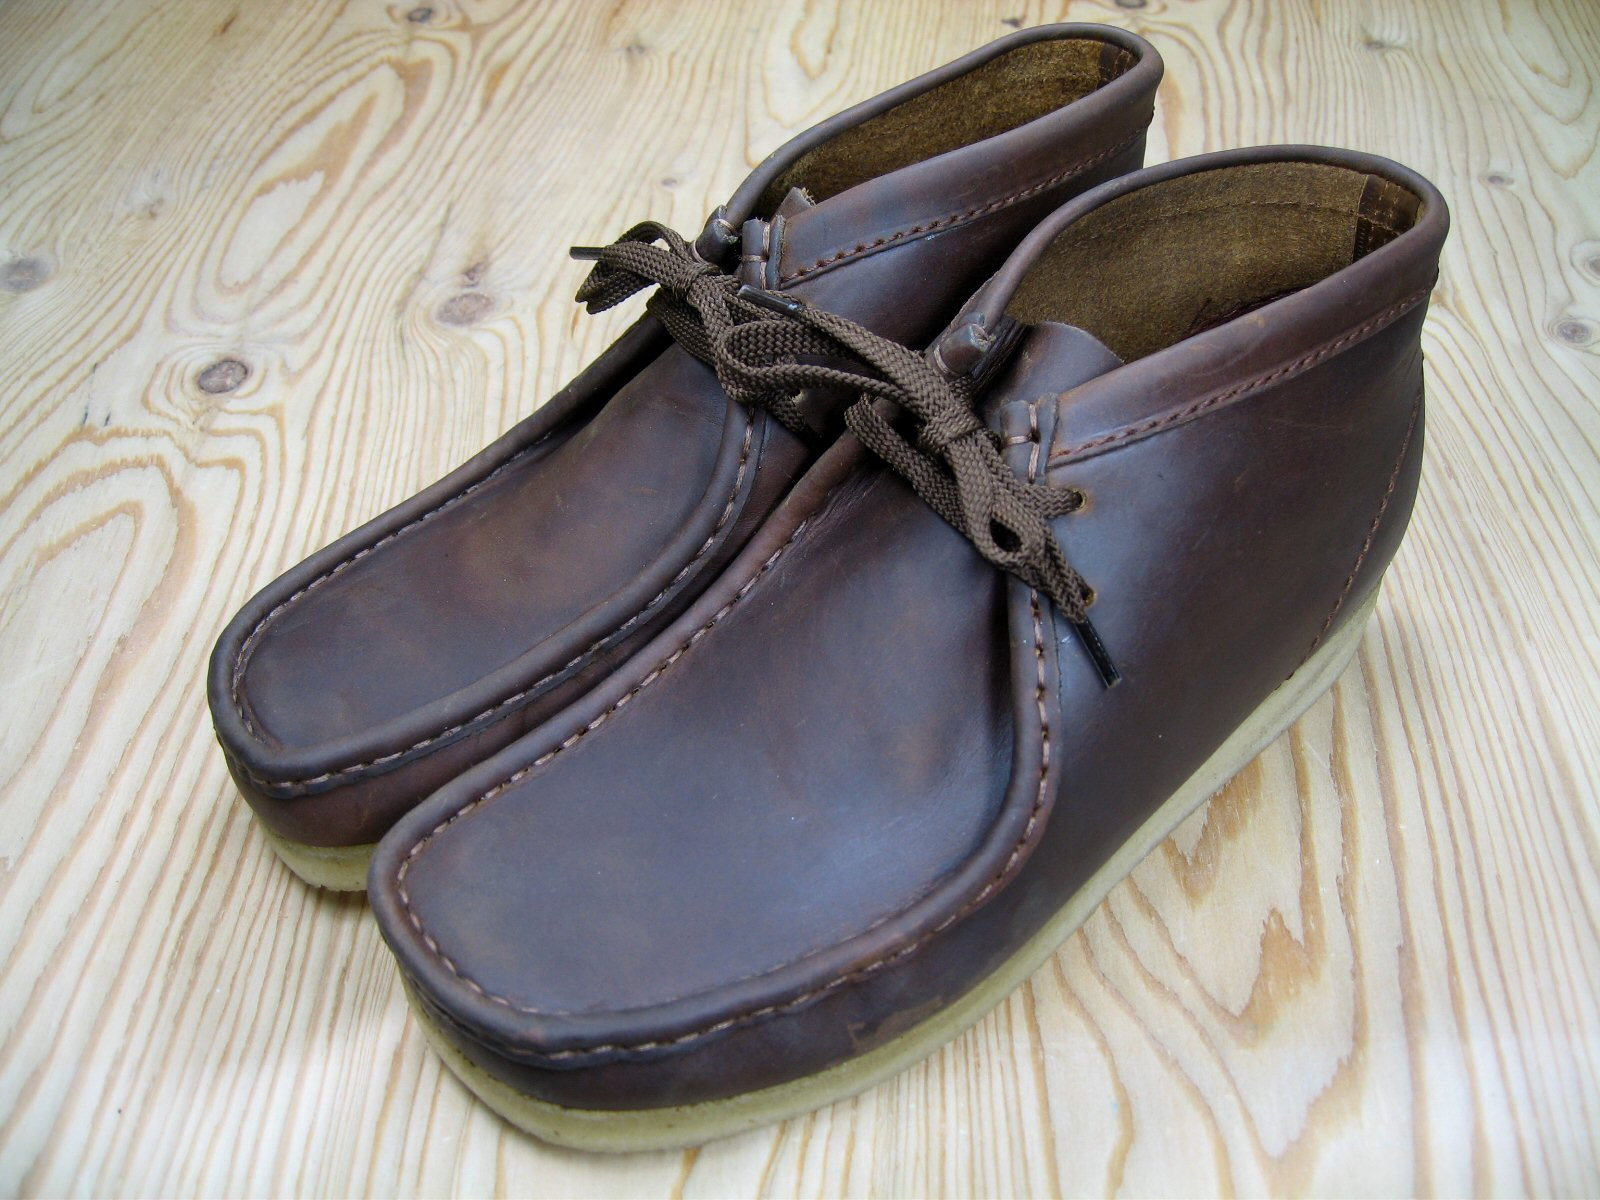 CLARKS WALLABEE BOOT BEESWAX